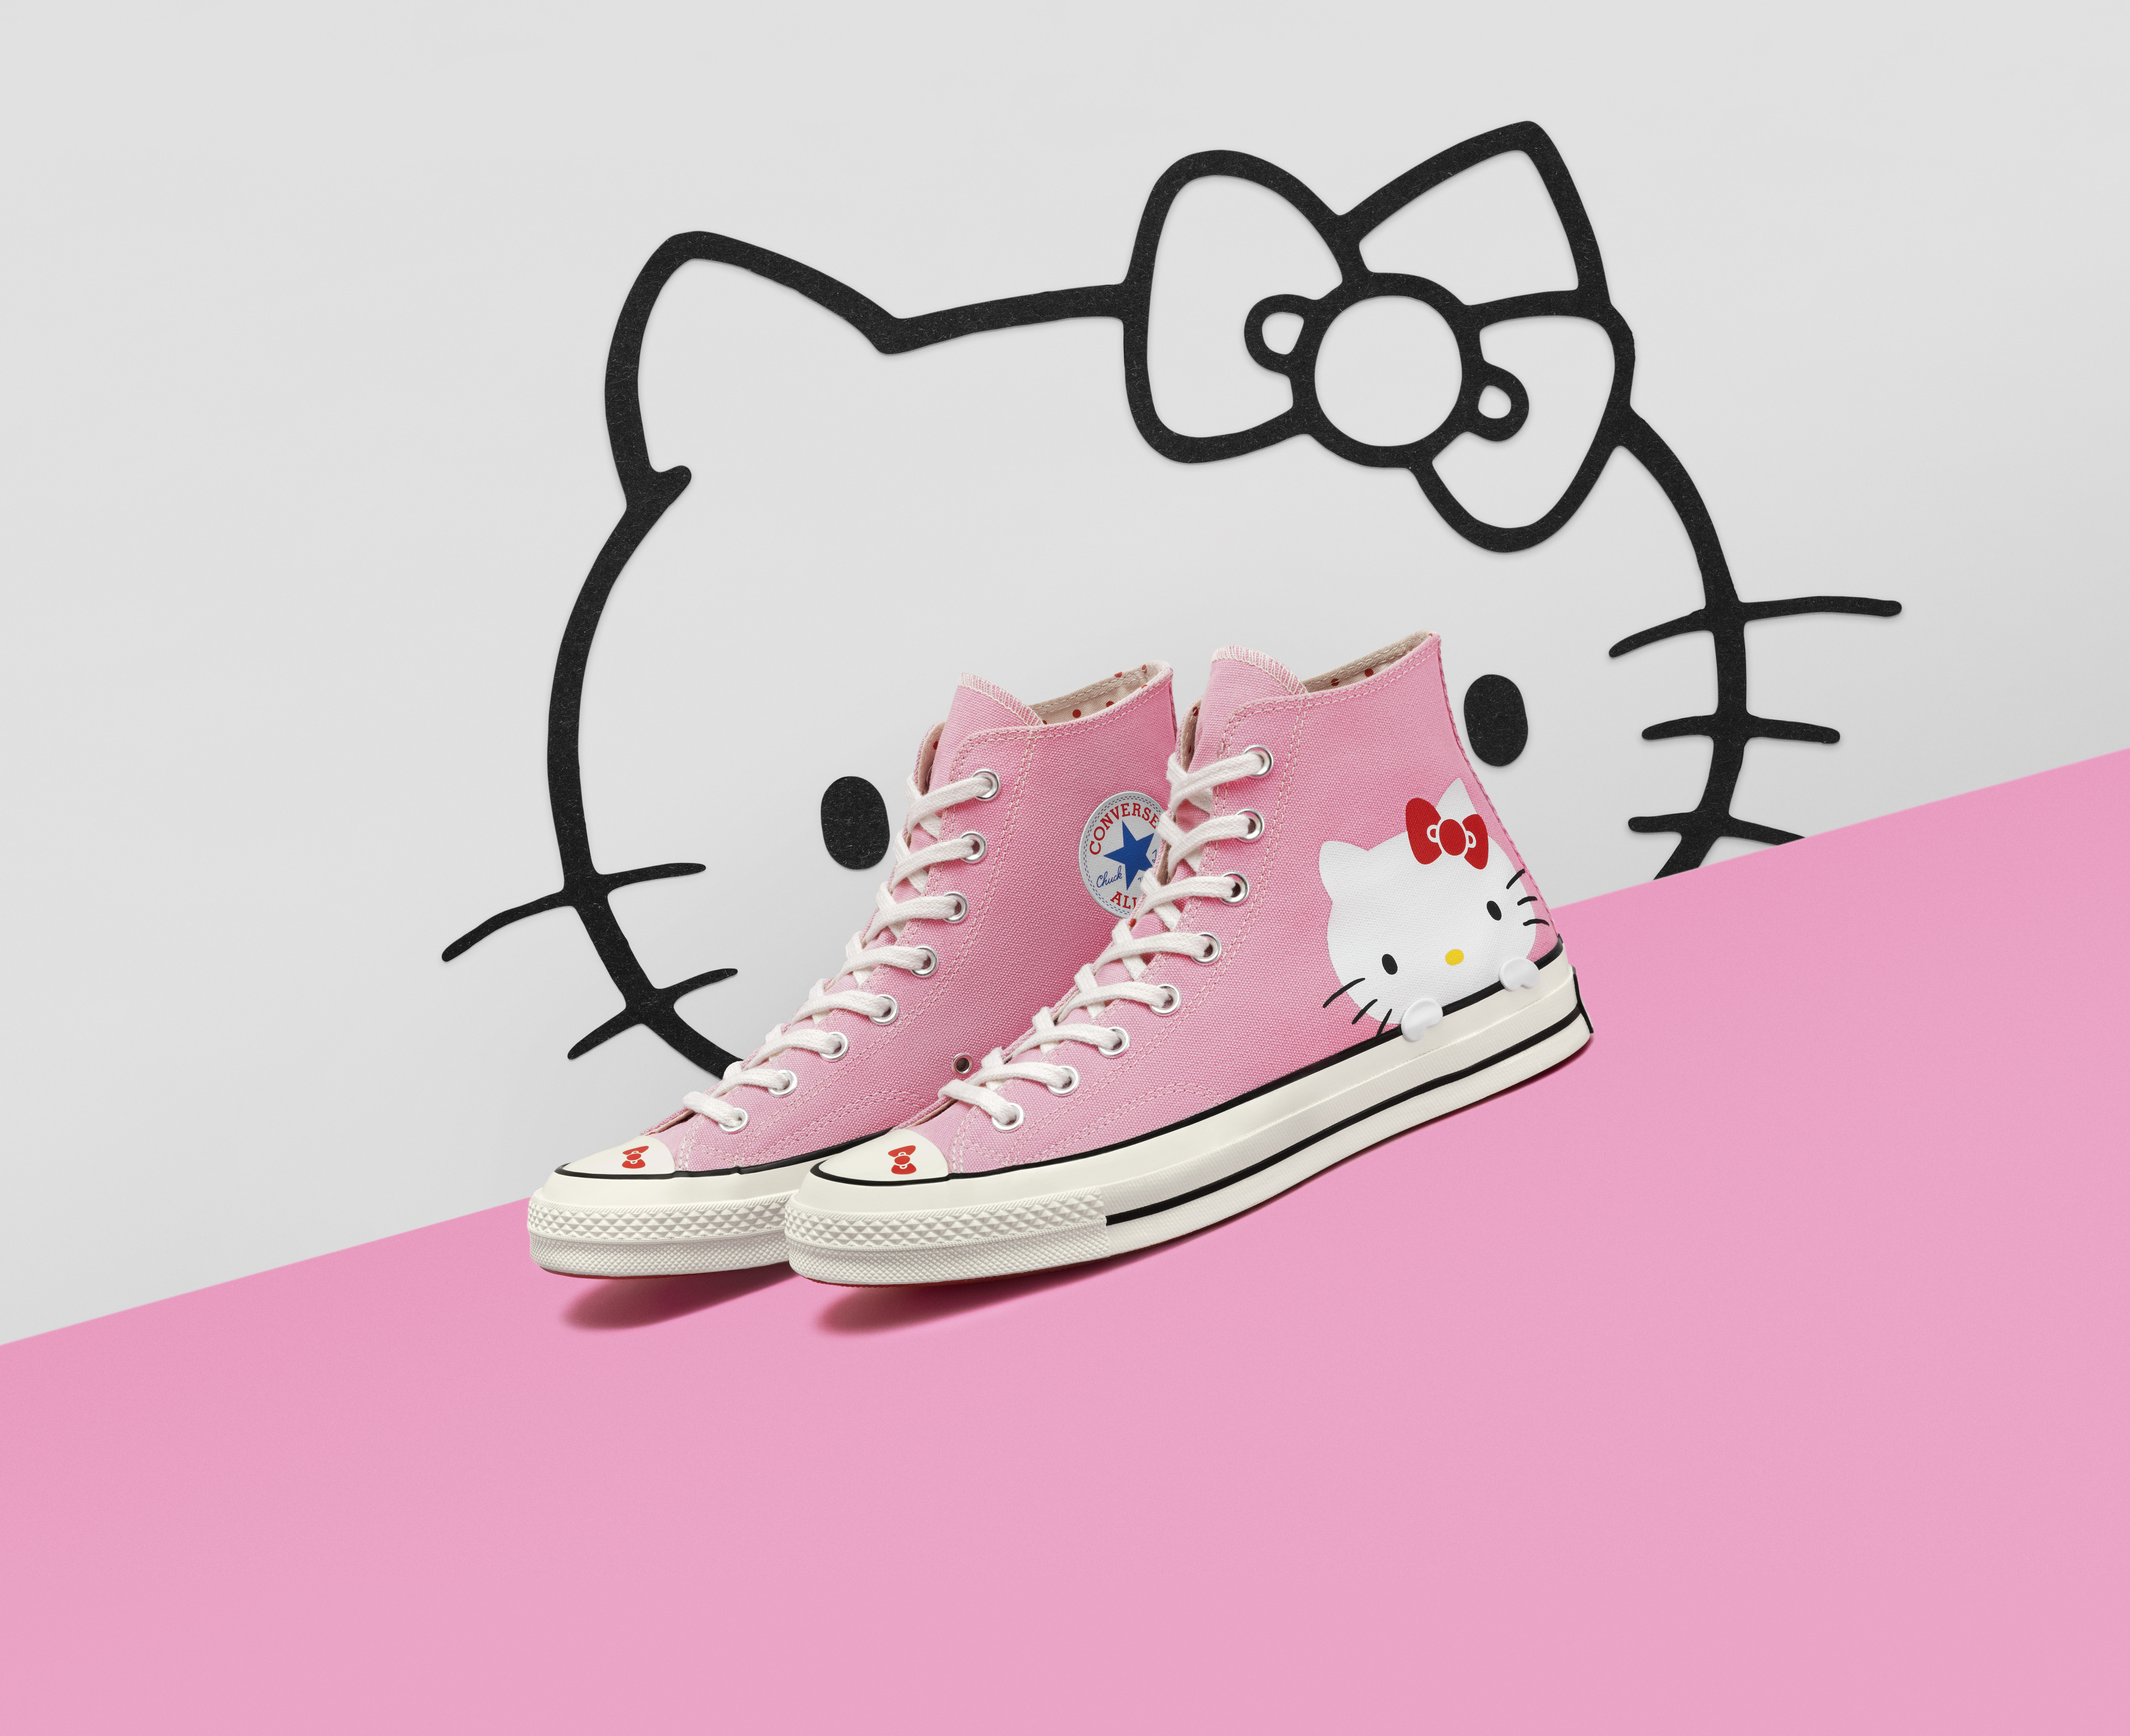 Sanrio x Converse to Release Hello Kitty Sneakers 4974ef81c5175